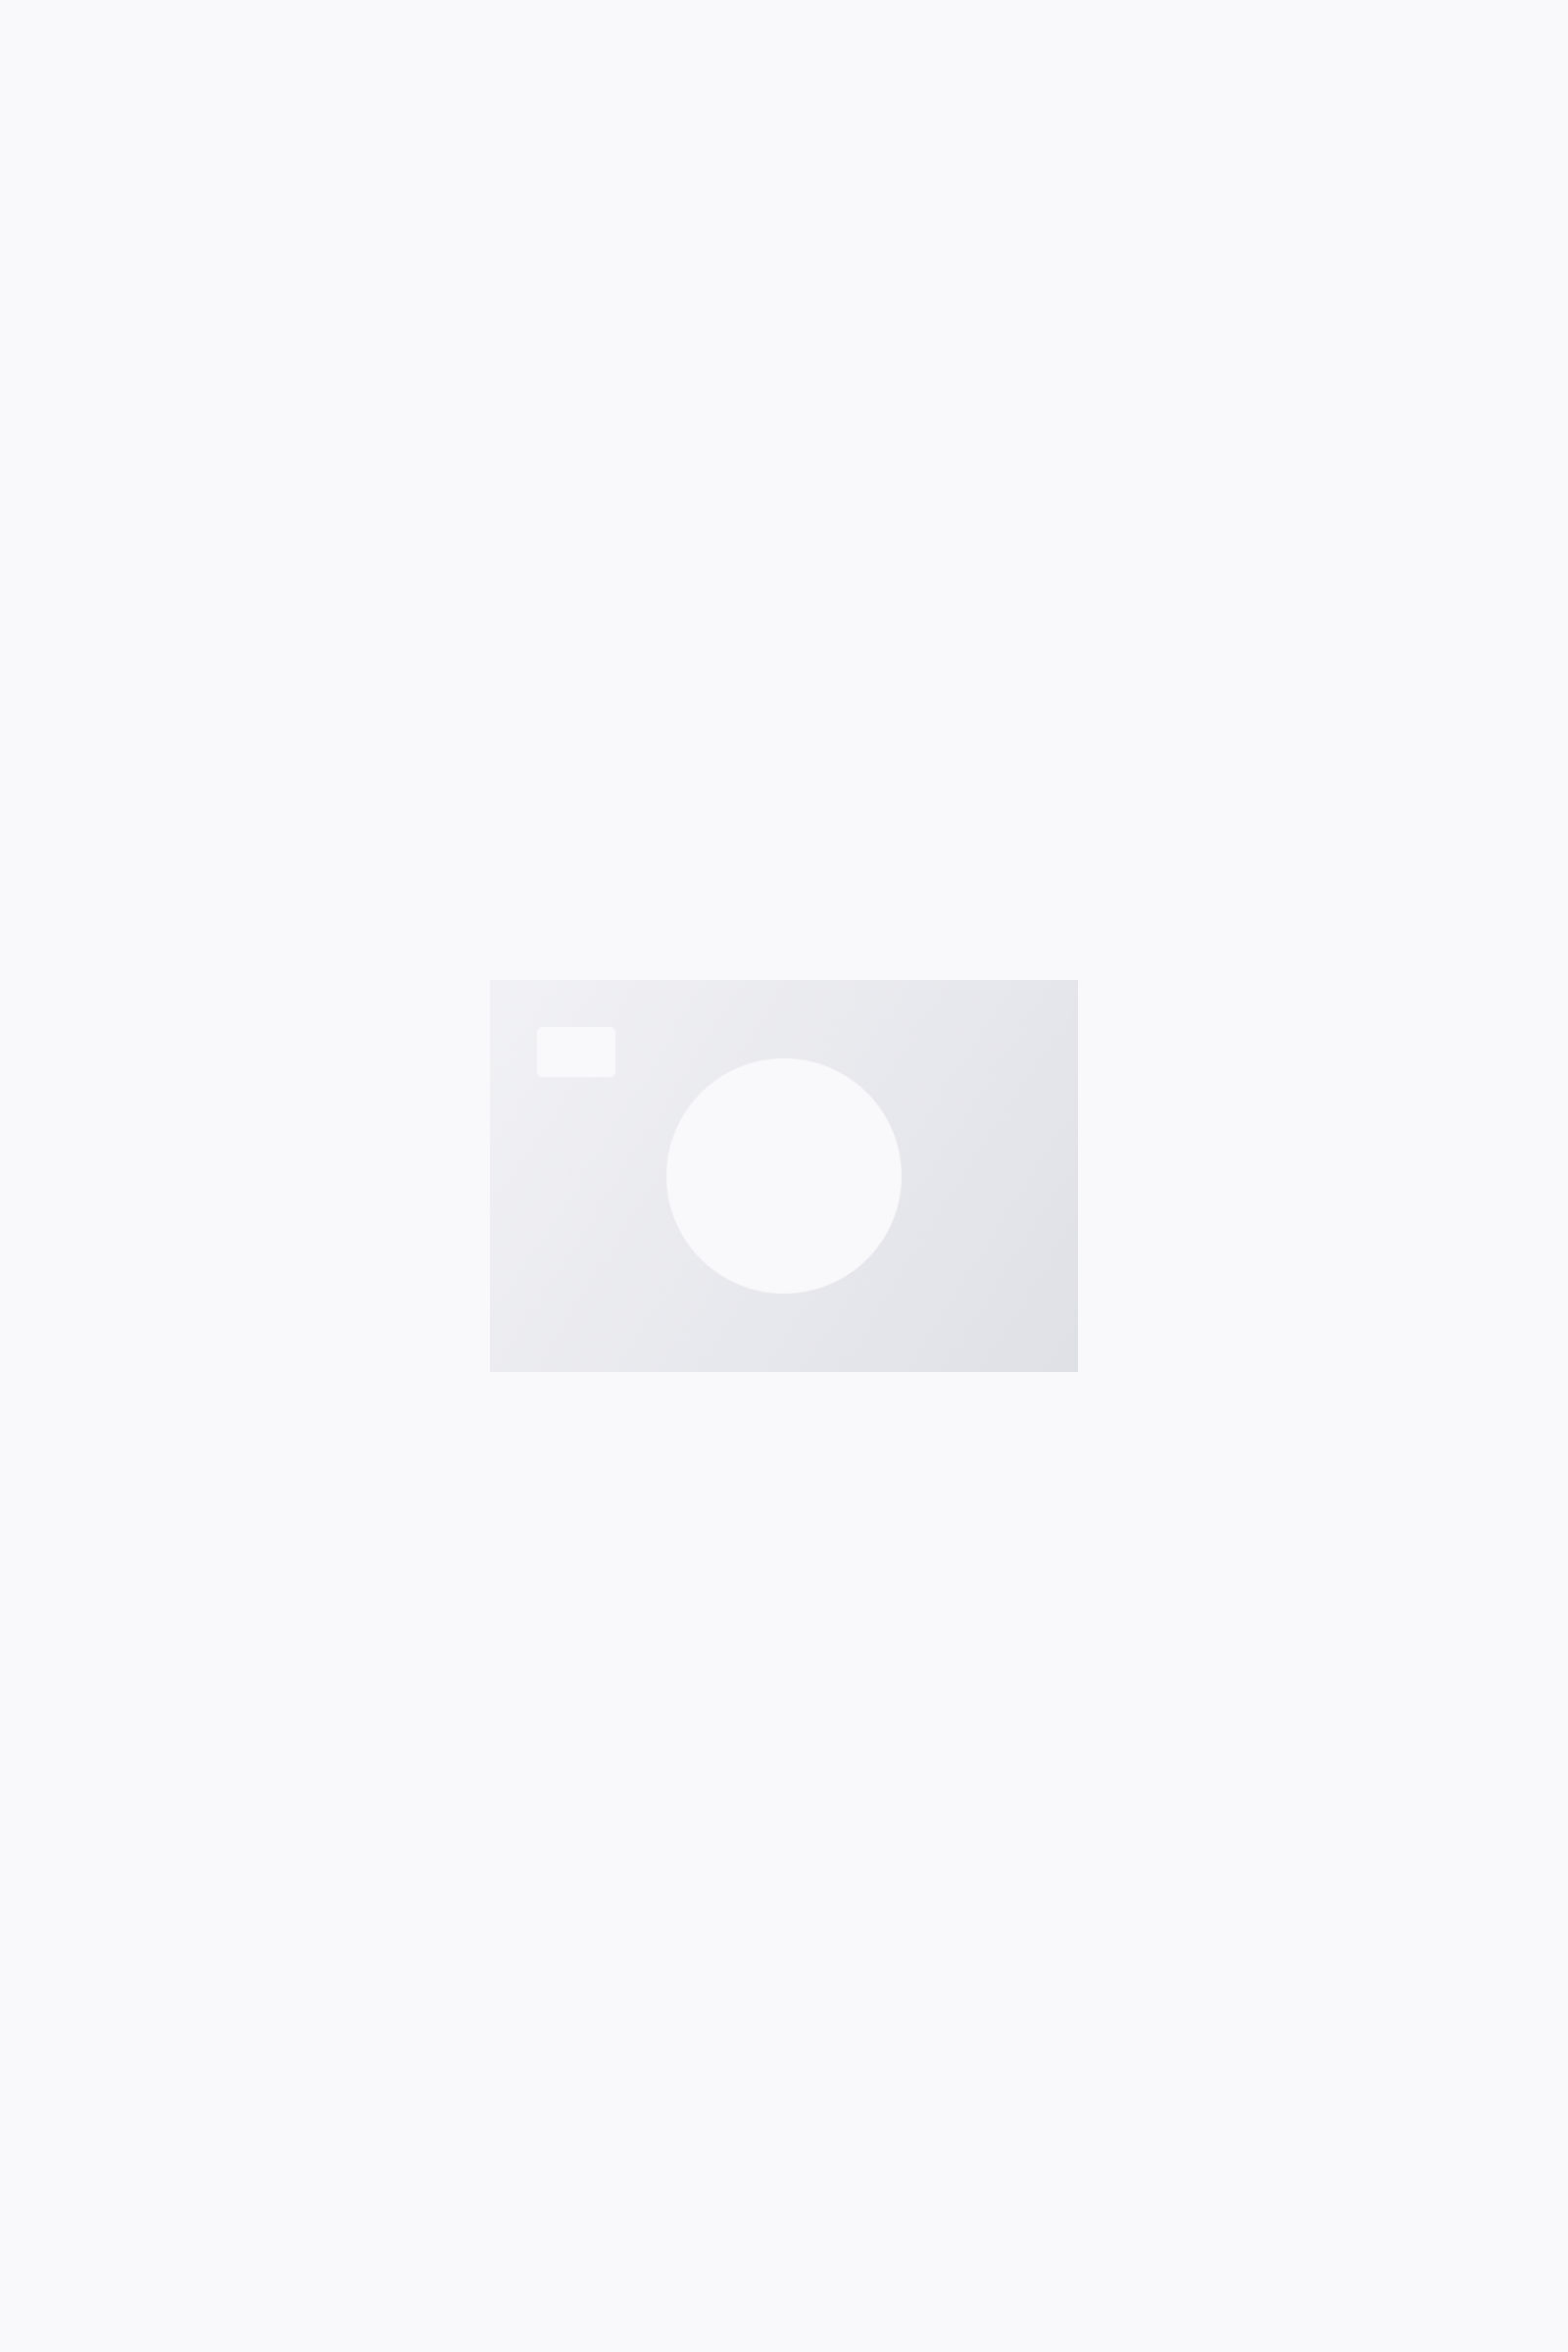 COS WORKWEAR JACKET,navy